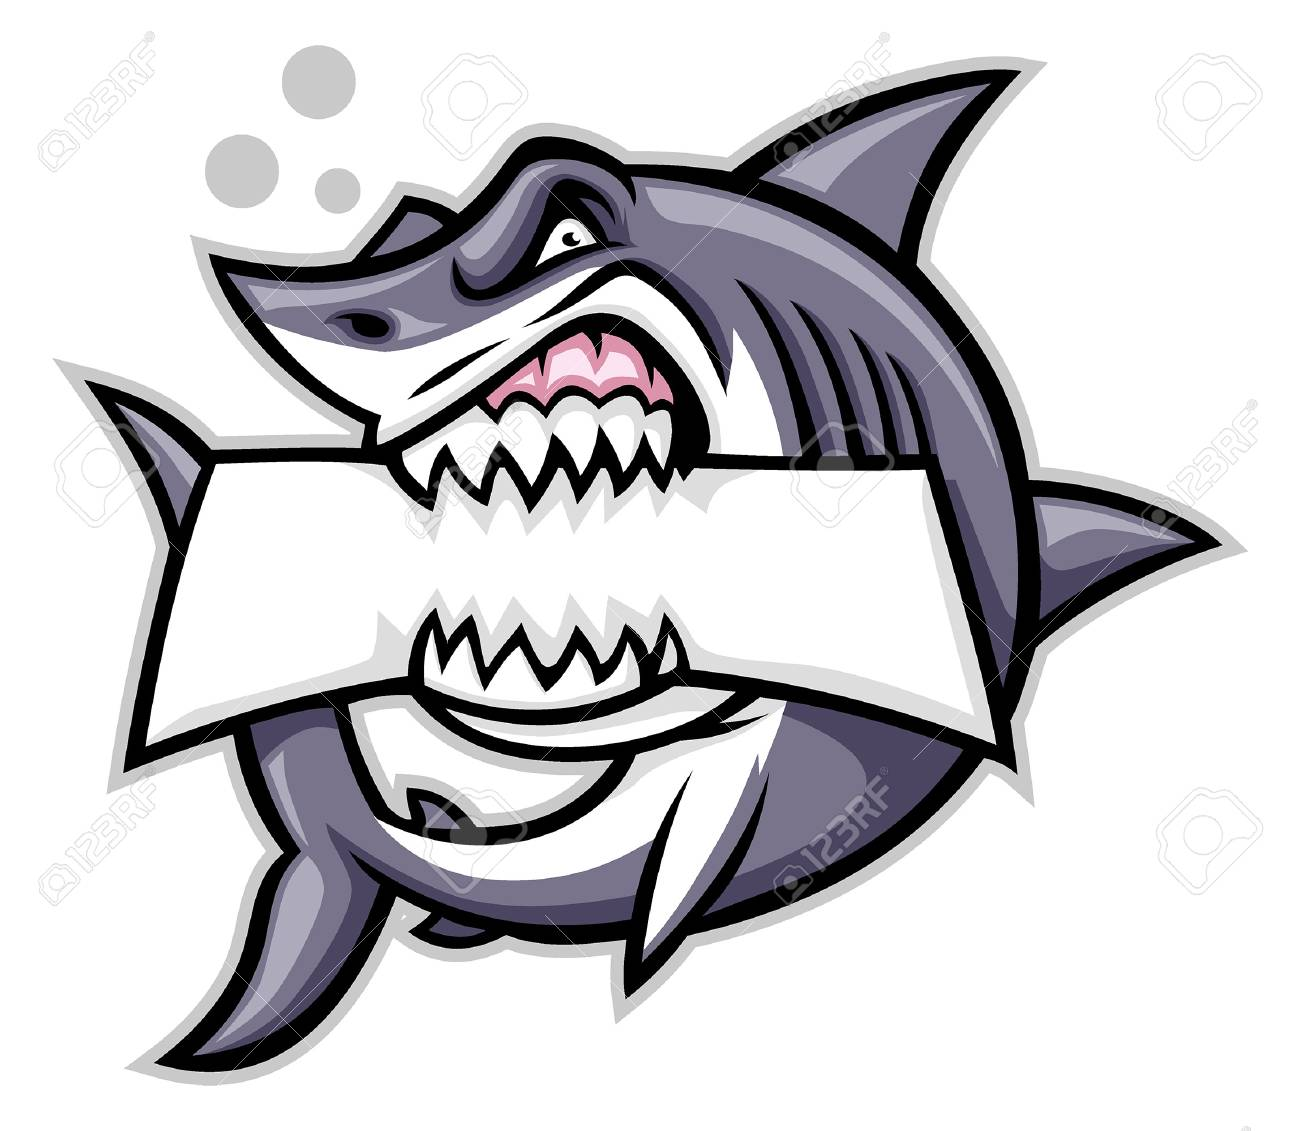 angry shark mascot bite the text space - 117123947